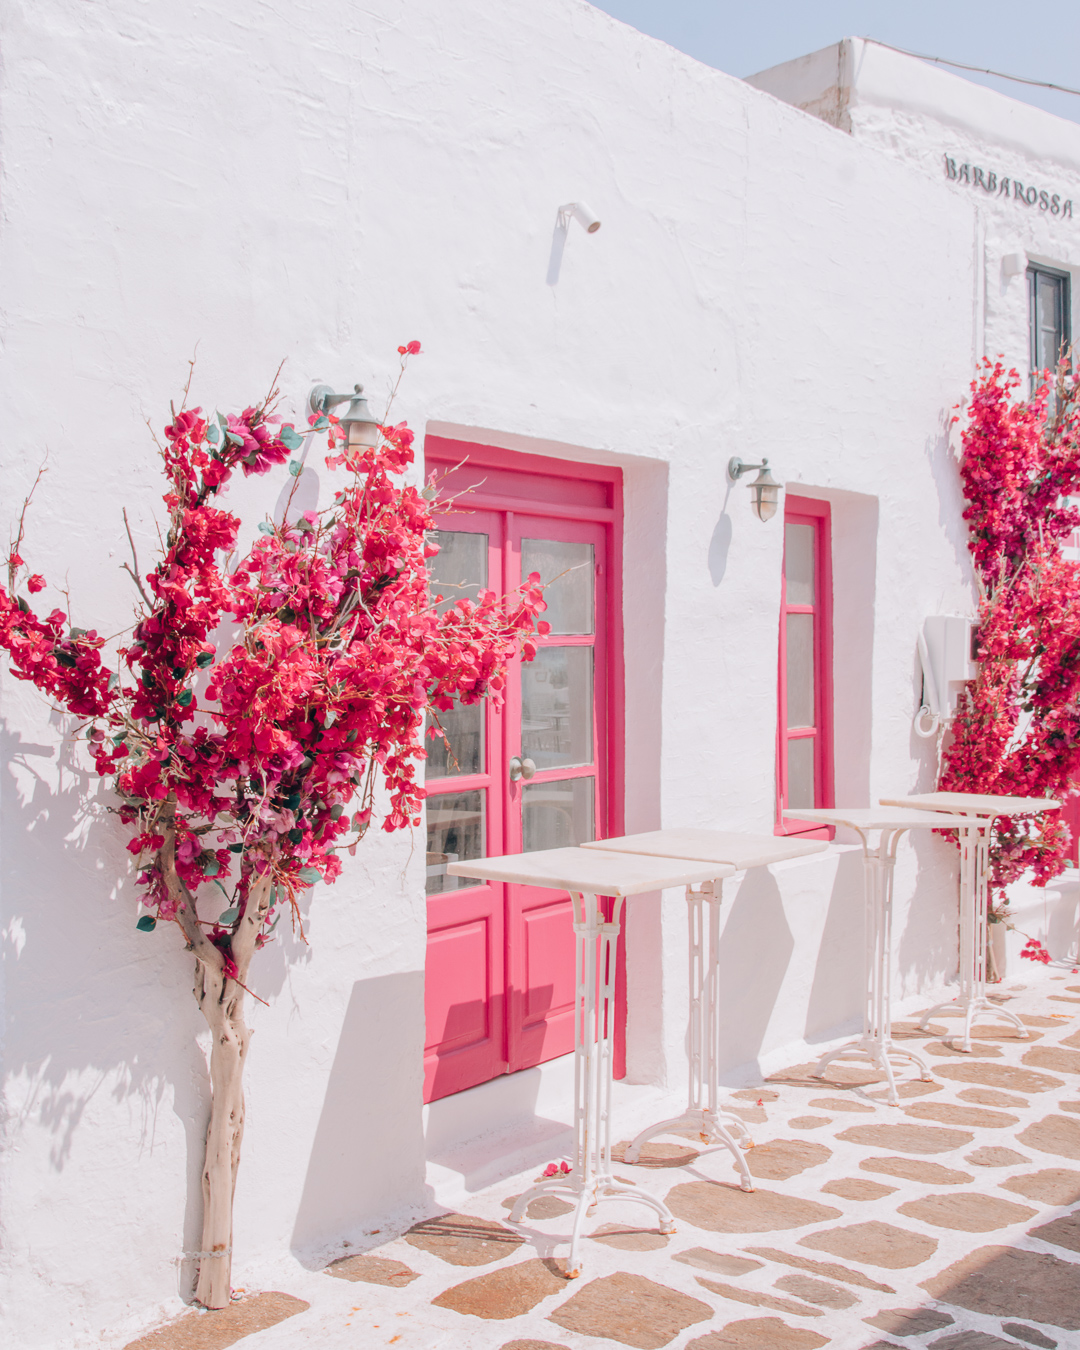 A bar with flowers in Paros